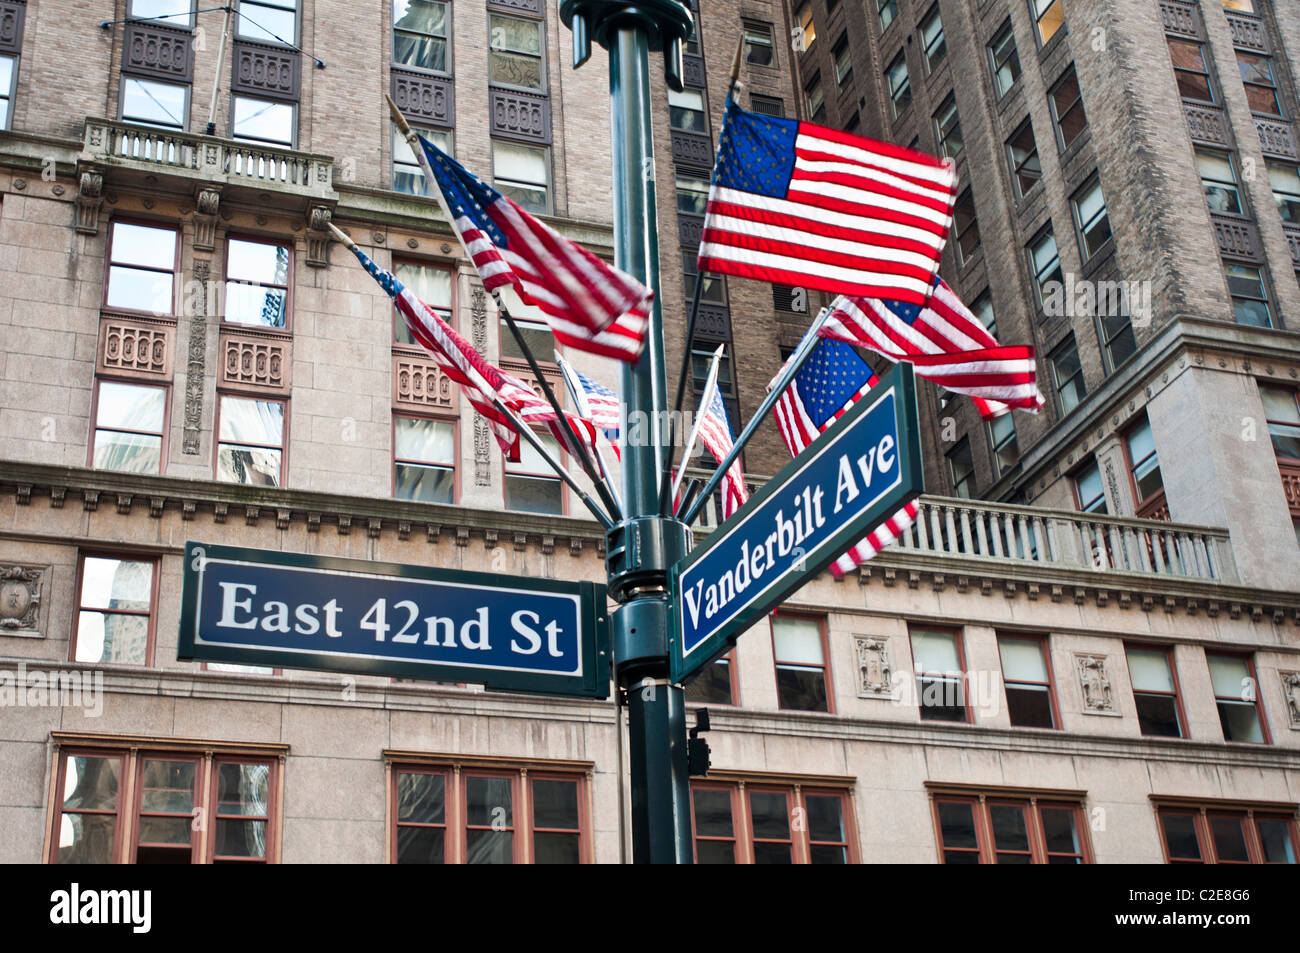 East 42nd Street and Vanderbilt Avenue street sign with American flags, Manhattan, New York City, USA - Stock Image